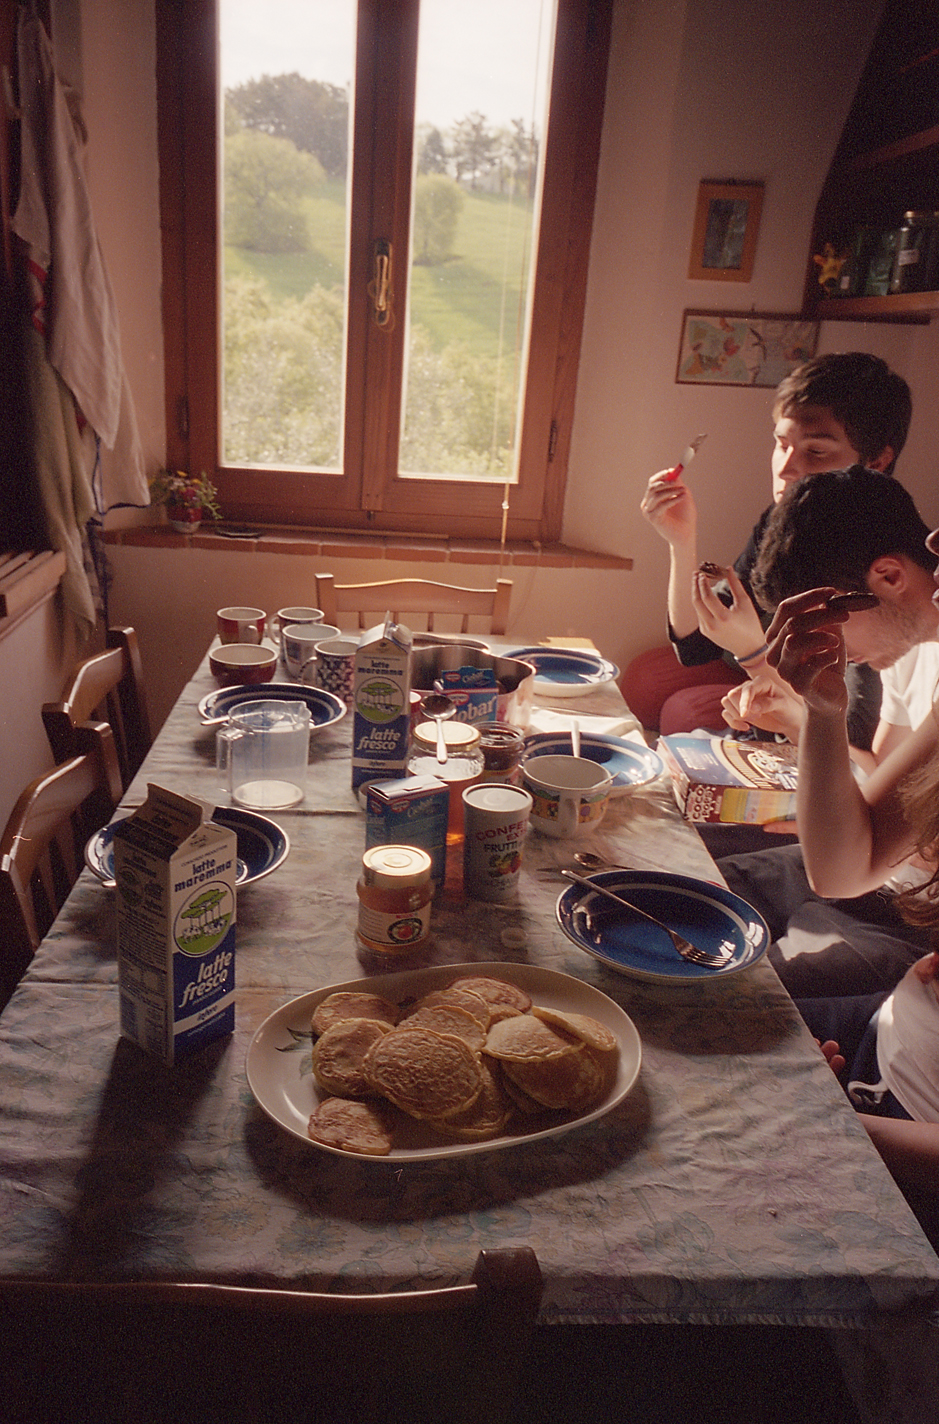 Breakfast with the regazzi - they had never had pancakes before!